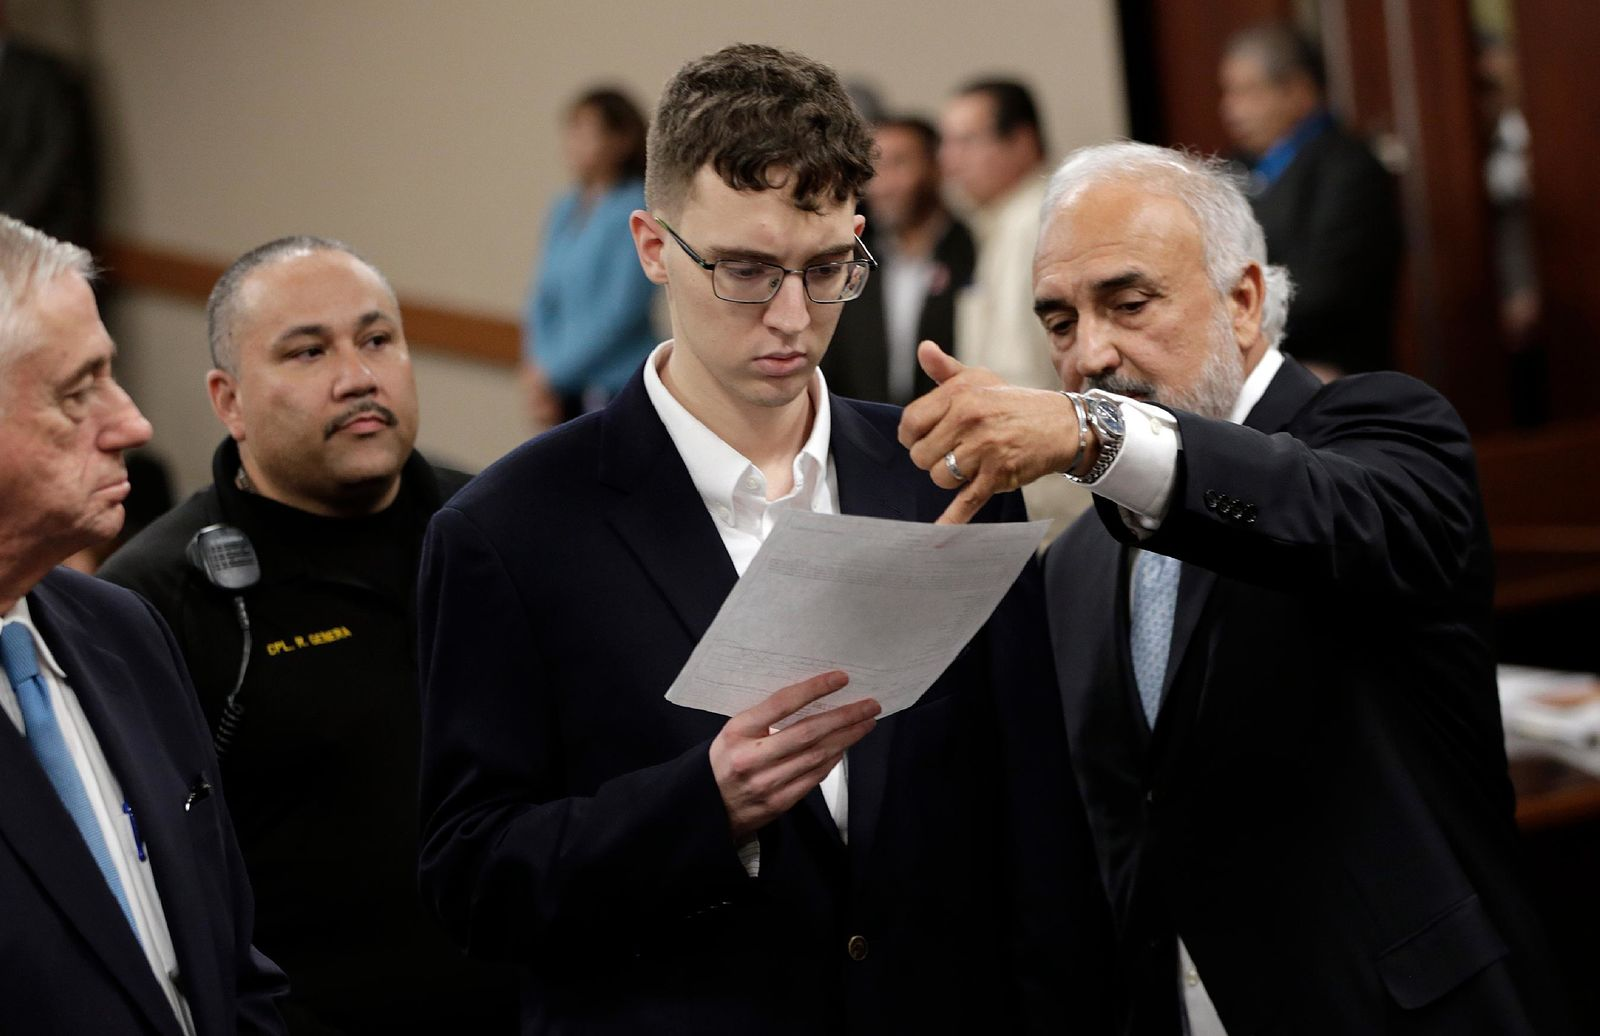 El Paso Walmart mass shooter Patrick Crusius is arraigned Thursday, Oct. 10, 2019, in the 409th state District Court with Judge Sam Medrano presiding. Crusius, 21,  from Allen, Texas, stands accused of killing 22 and injuring 25 in the Aug. 3, 2019, mass shooting at an East El Paso Walmart in the seventh deadliest mass shooting in modern U.S. history and third deadliest in Texas. Crusius entered a not guilty plea alongside his attorneys Mark Stevens and Joe Spencer. (Mark Lambie/The El Paso Times via AP, Pool)